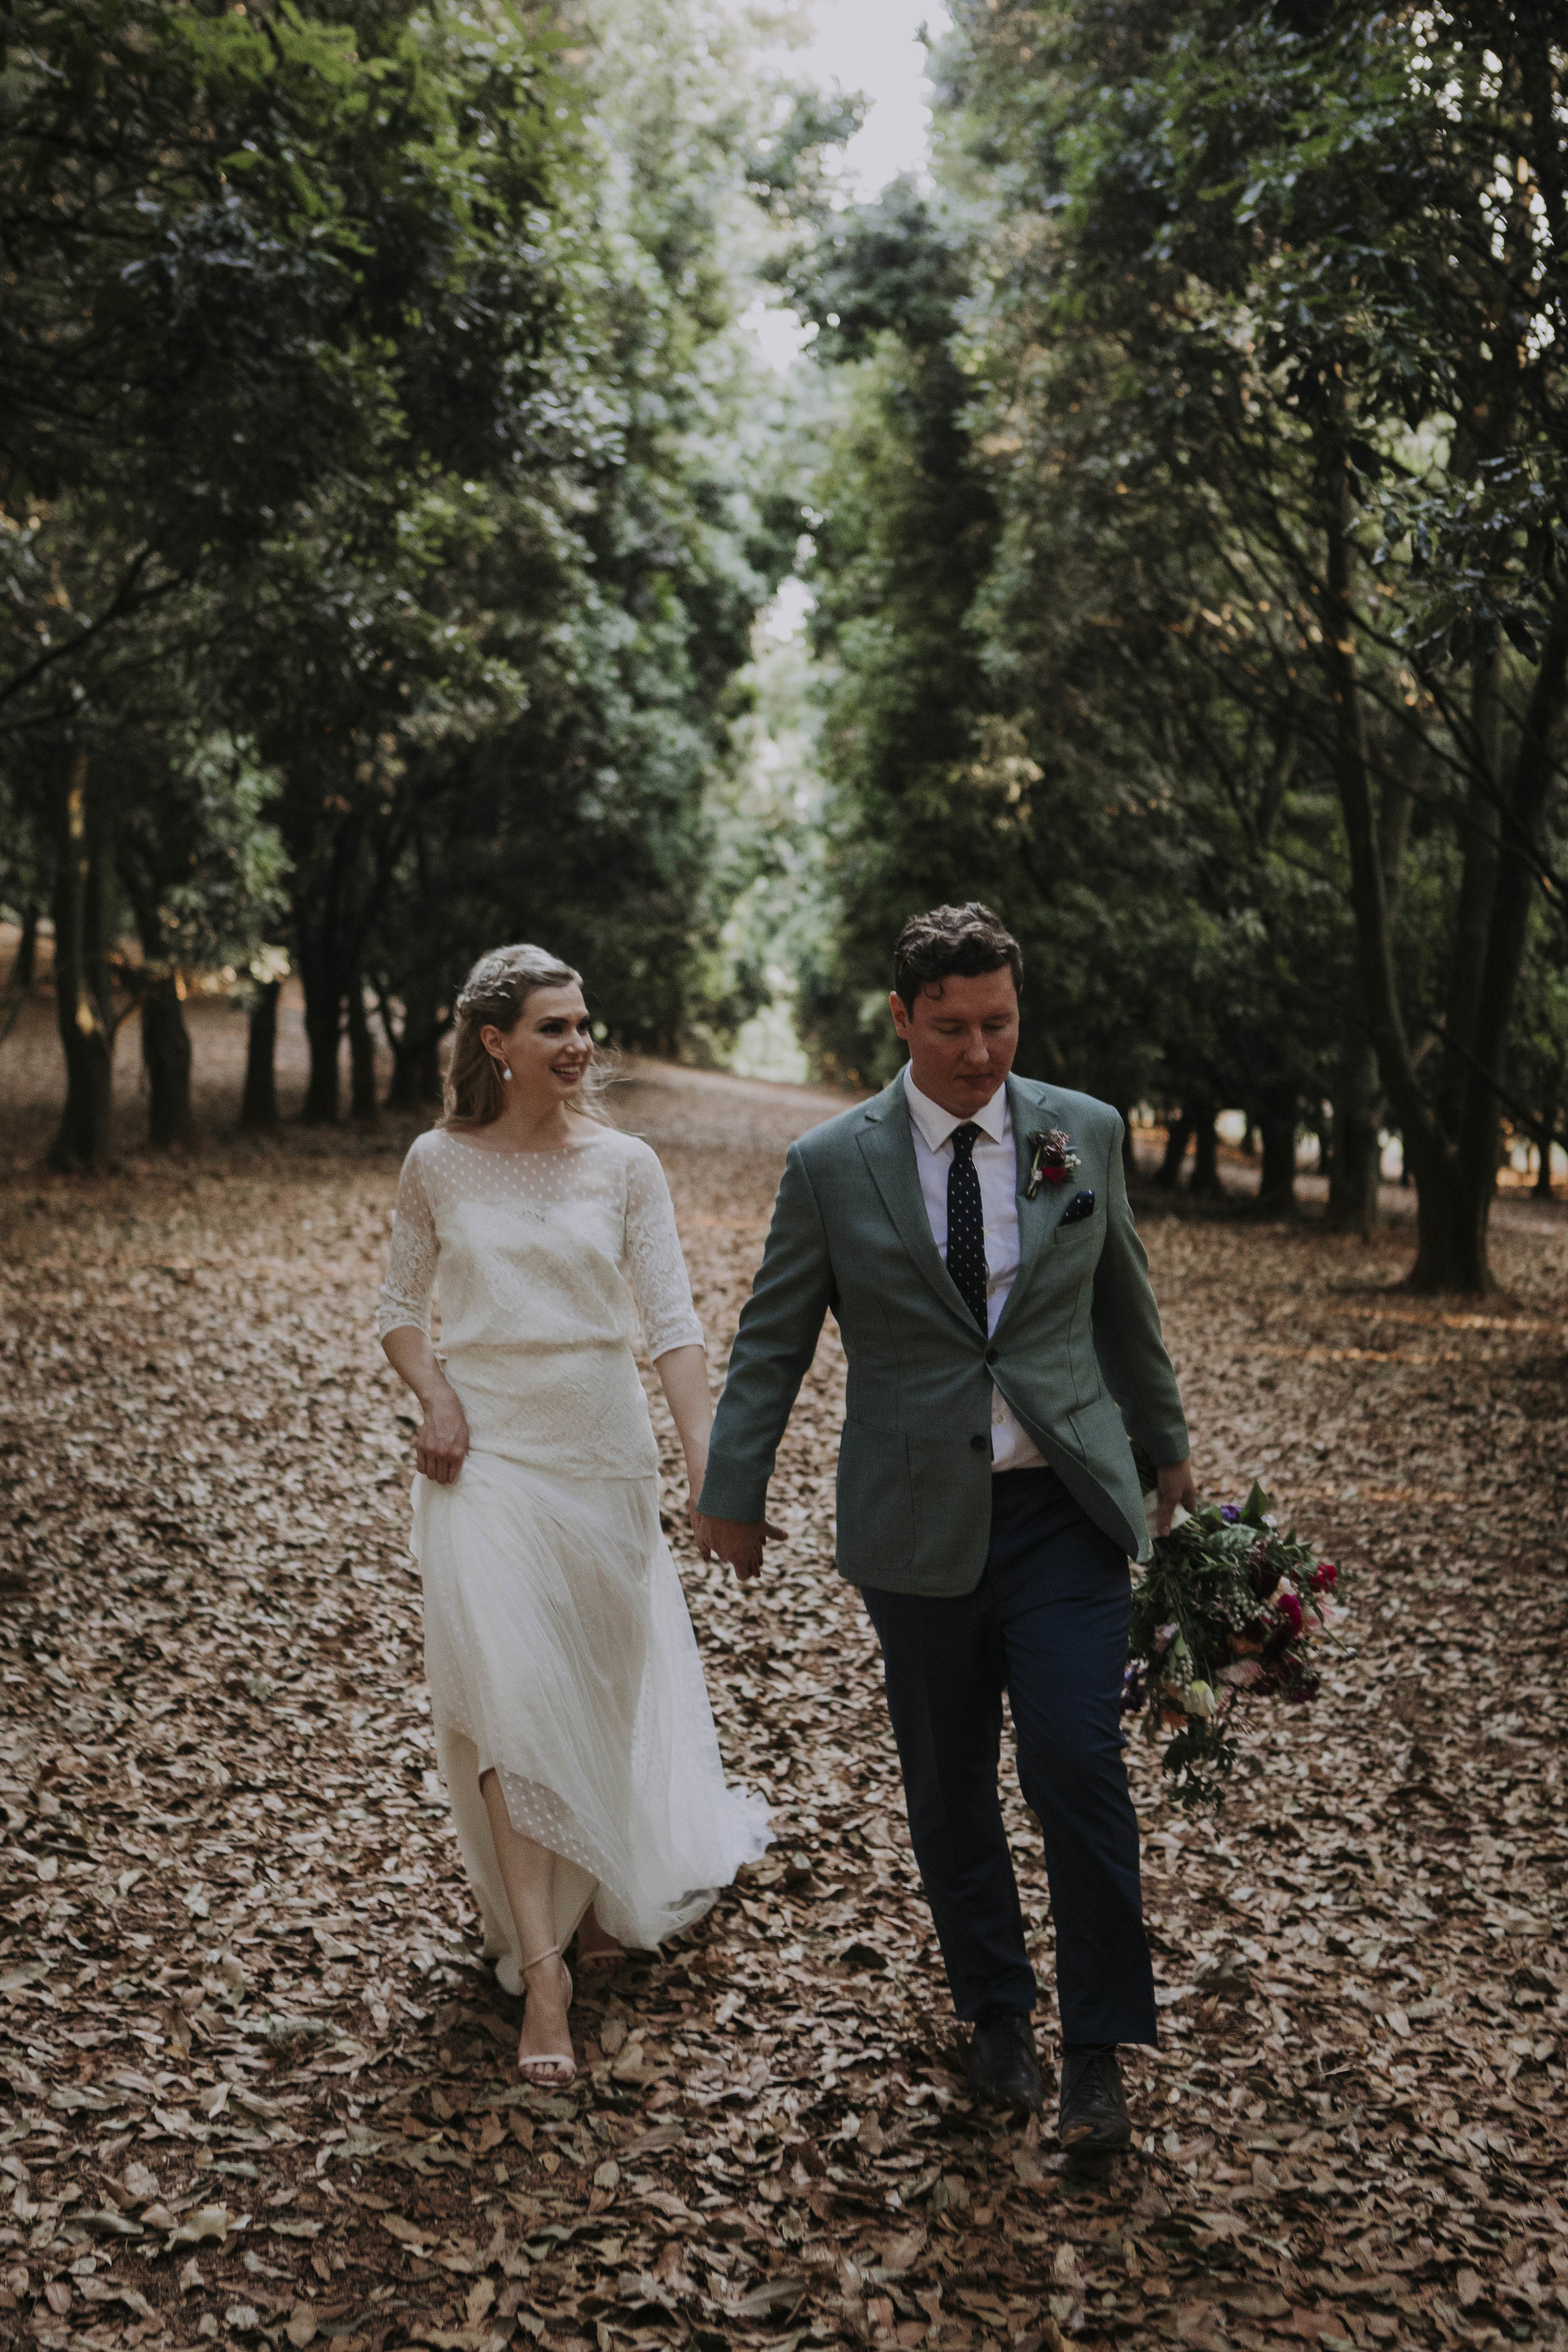 Angela and Sam - So I wanted to say first of all, thank you. Thank you for creating my gown which I could not have been happier with, that contributed to the best day I could have ever imagined!Our wedding in the Byron hinterland was absolute perfection to us. Sam was speechless when he finally saw me walking down the aisle in the dress, beaming like a Cheshire cat.I was so nervous leading up to the day, but when I woke up on the morning of the wedding and started getting ready I was bizarrely calm (for me) and as soon as I slipped into that polka-dot tulle and lace I felt so comfortable and I just knew that no matter what happened from that point on, the day would be magic because I felt 100% myself... but an even better version!So thank you for helping to create that magic. The whole journey with you in the gown creation was so much fun, I looked forward to each appointment with such anticipation and enjoyed the dress being revealed a little bit more with each fitting - I shall carry those fond memories with me forever, so thank you again!Angela Barbeler